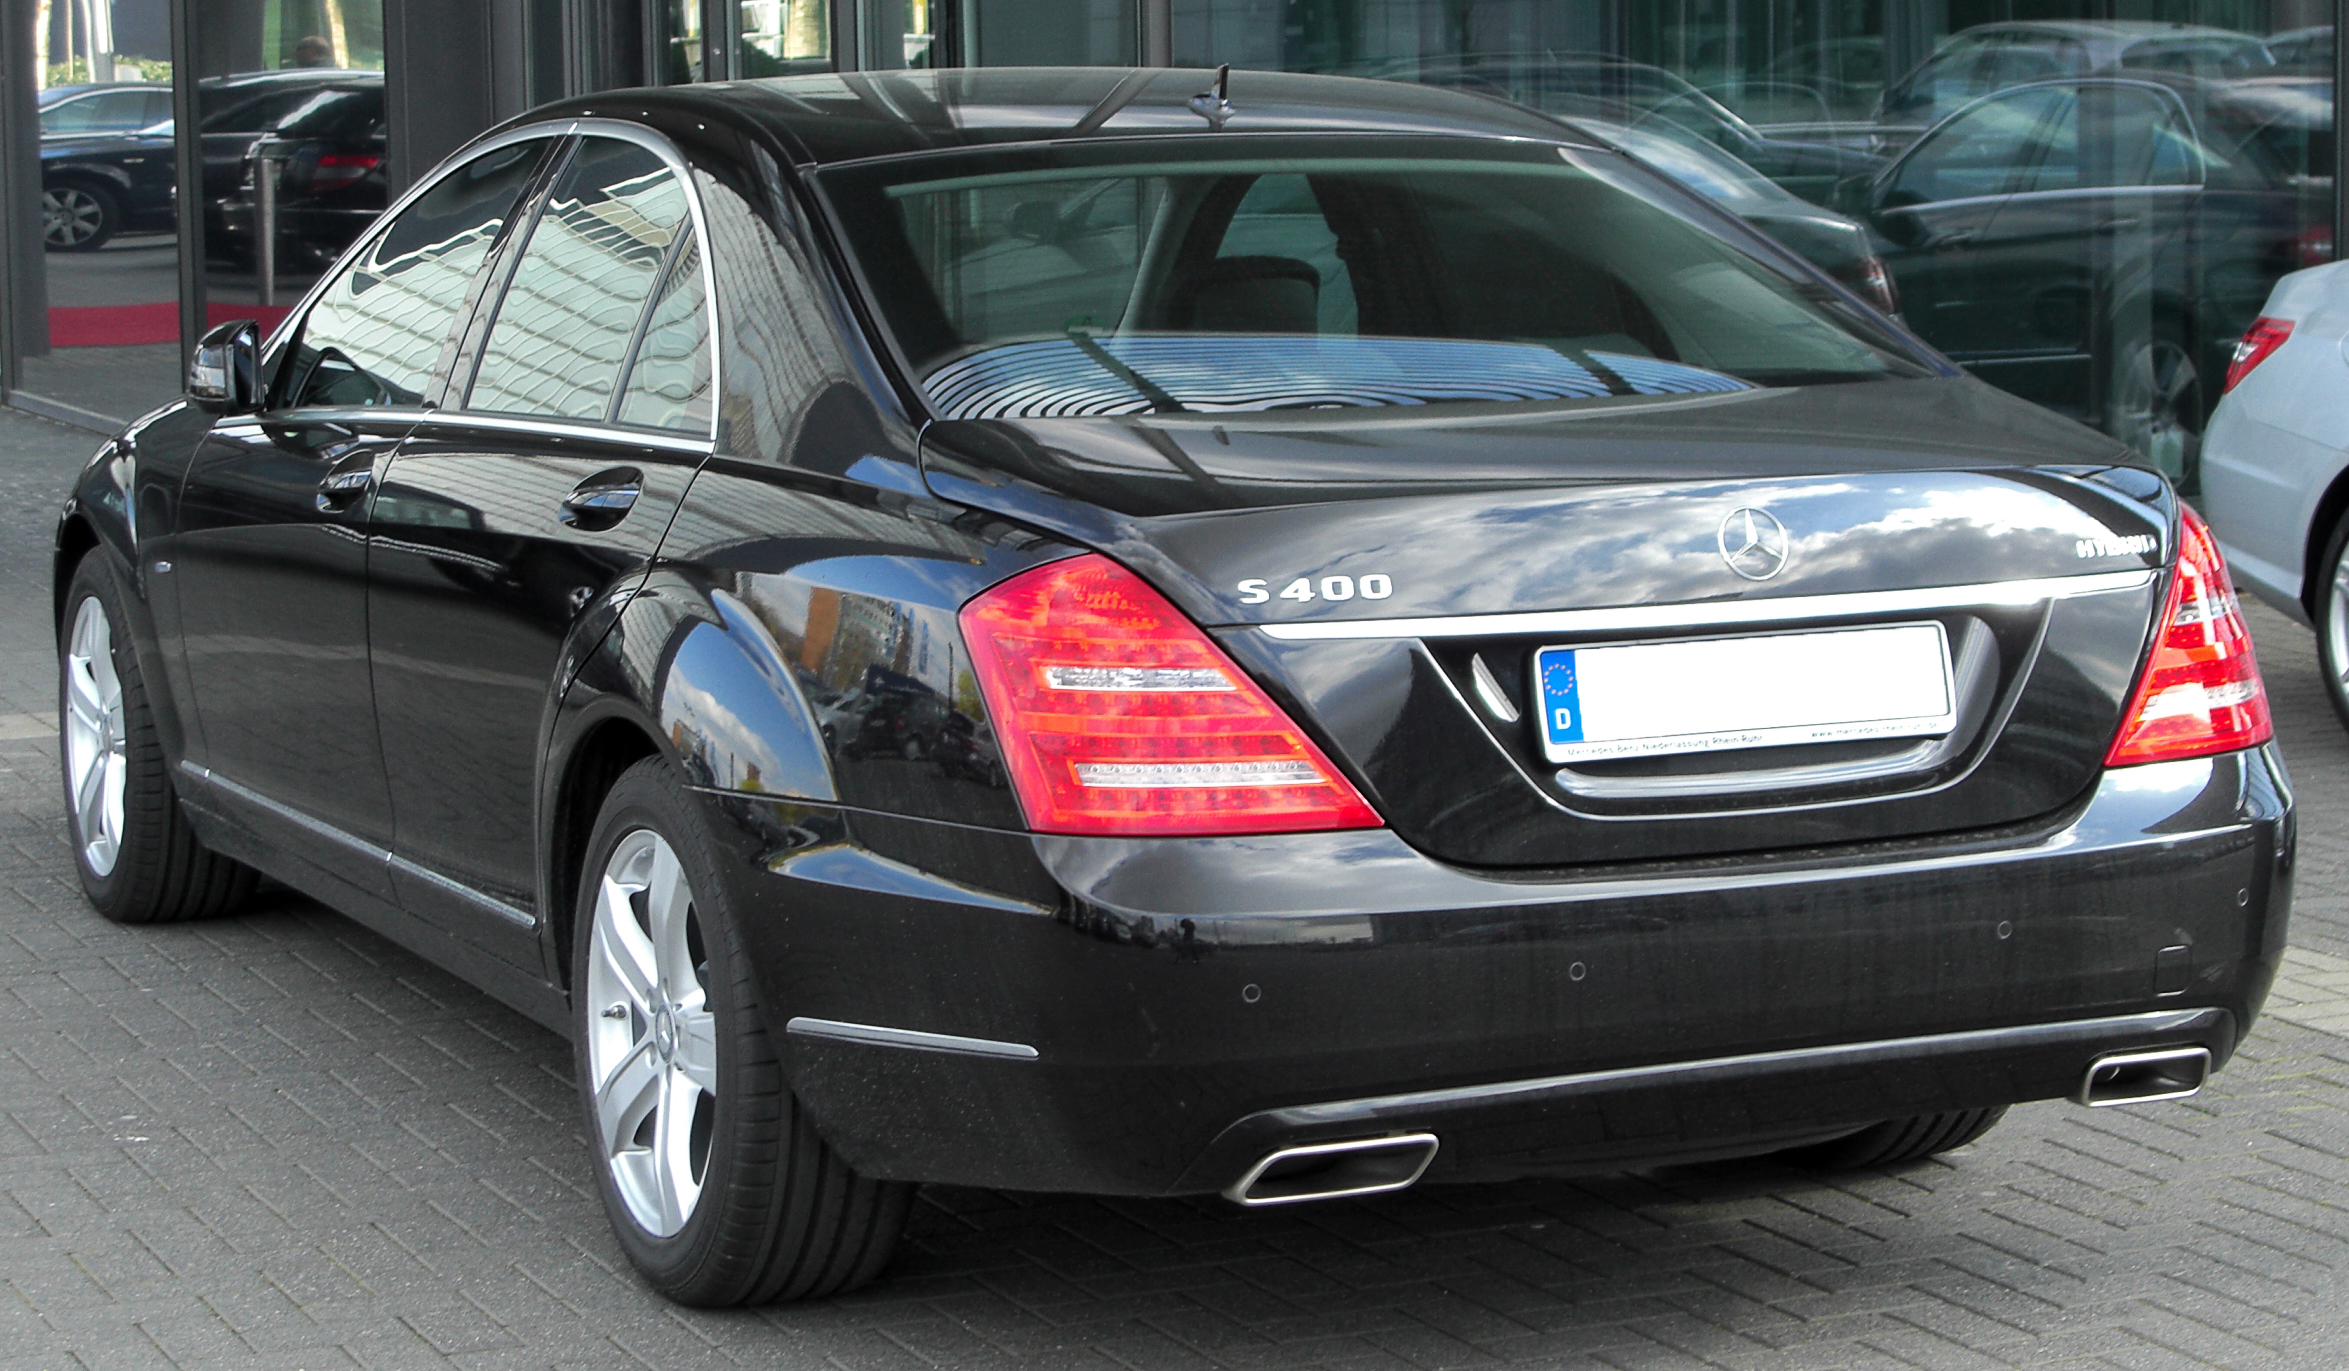 File:Mercedes S 400 HYBRID (W221) Facelift rear 20100410.jpg ...